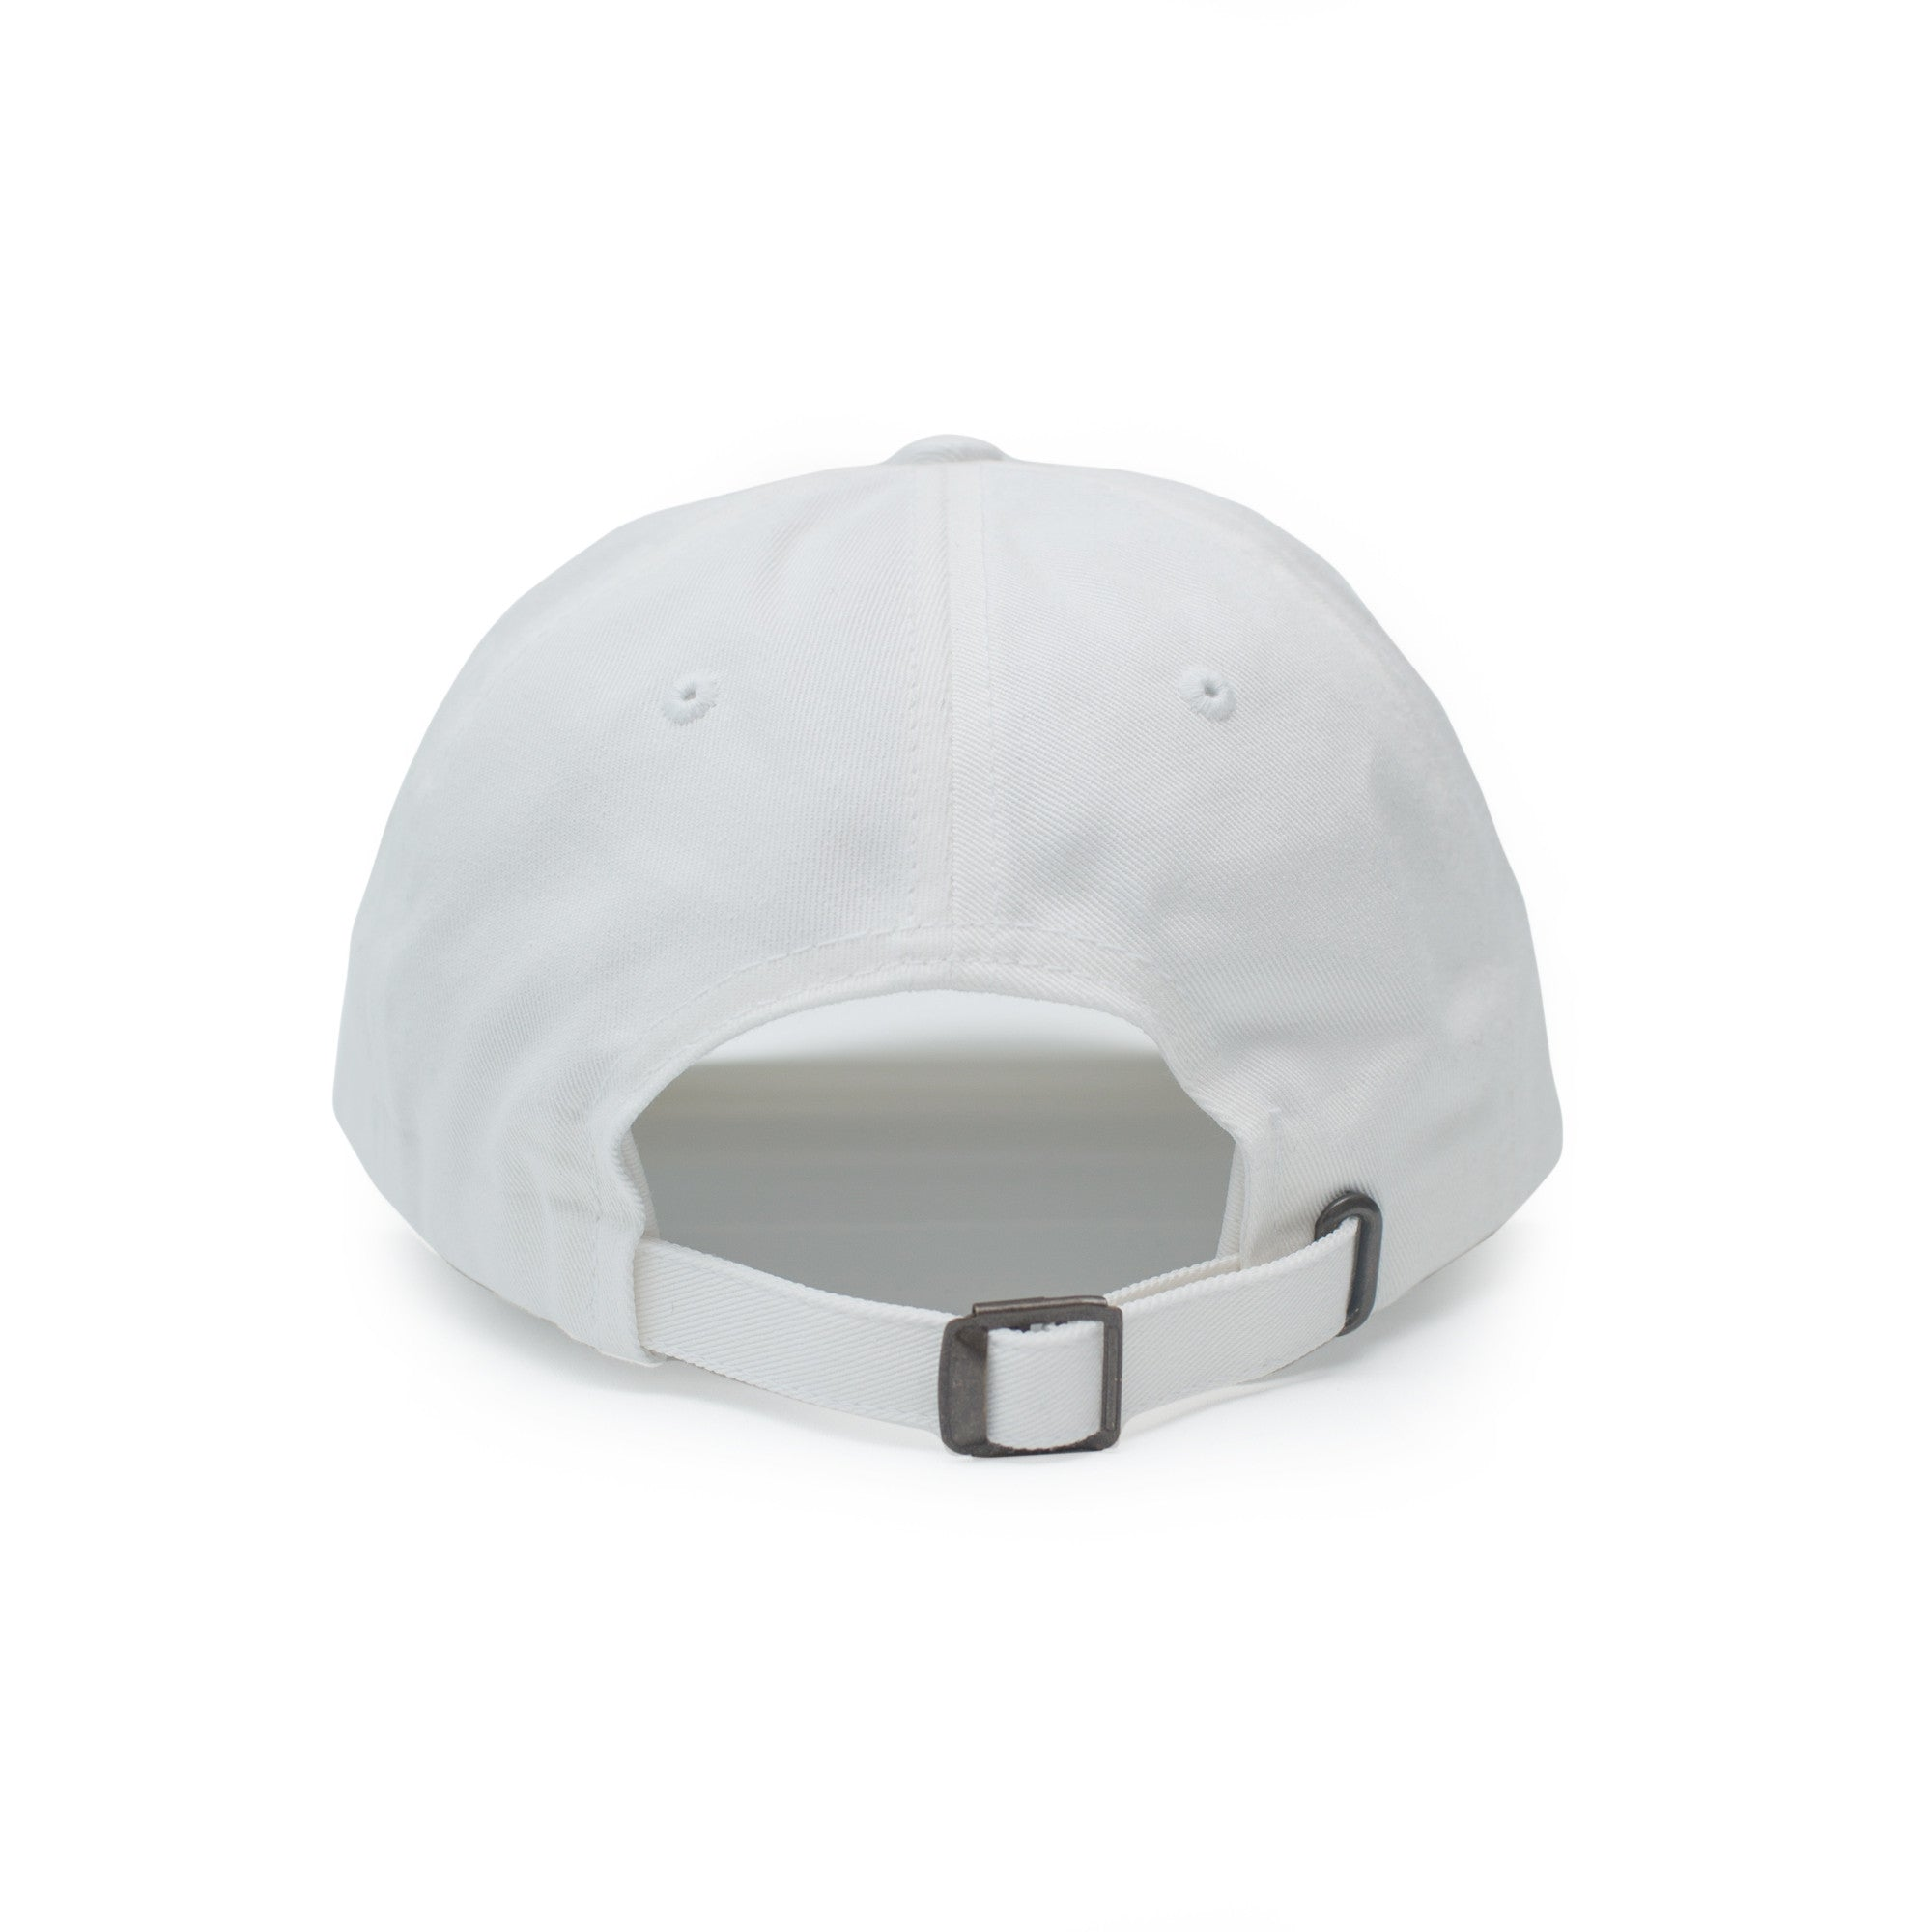 Ain't Gon Stop Hat (White)